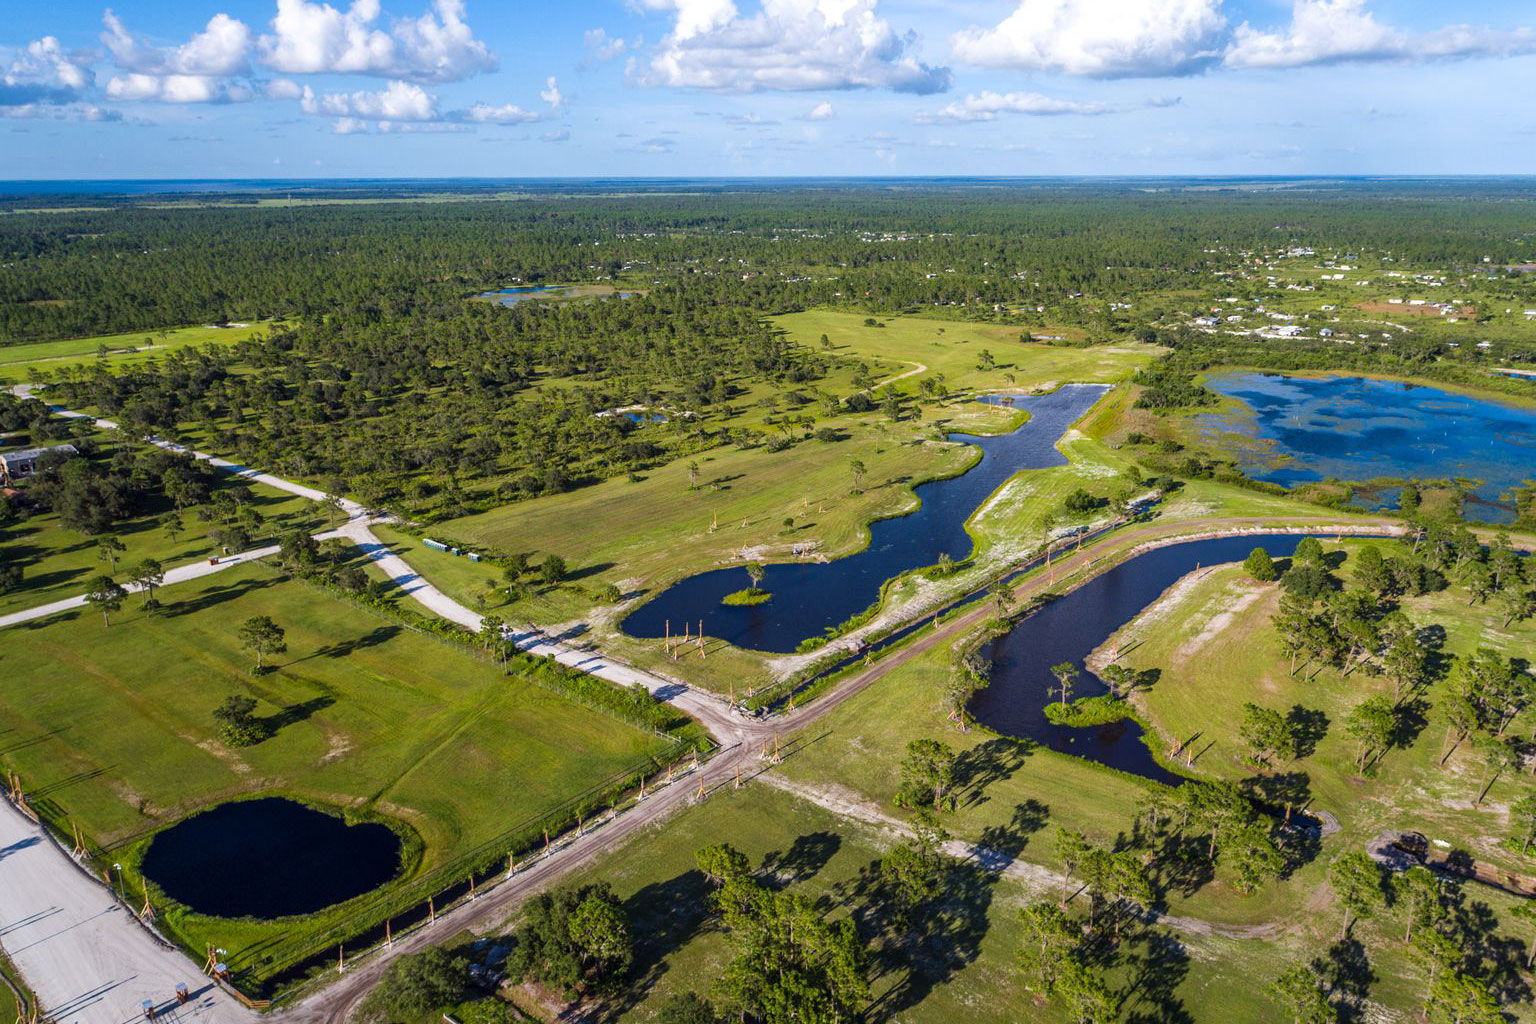 200+ Acres of Green Space, Trails, Fishing and more!